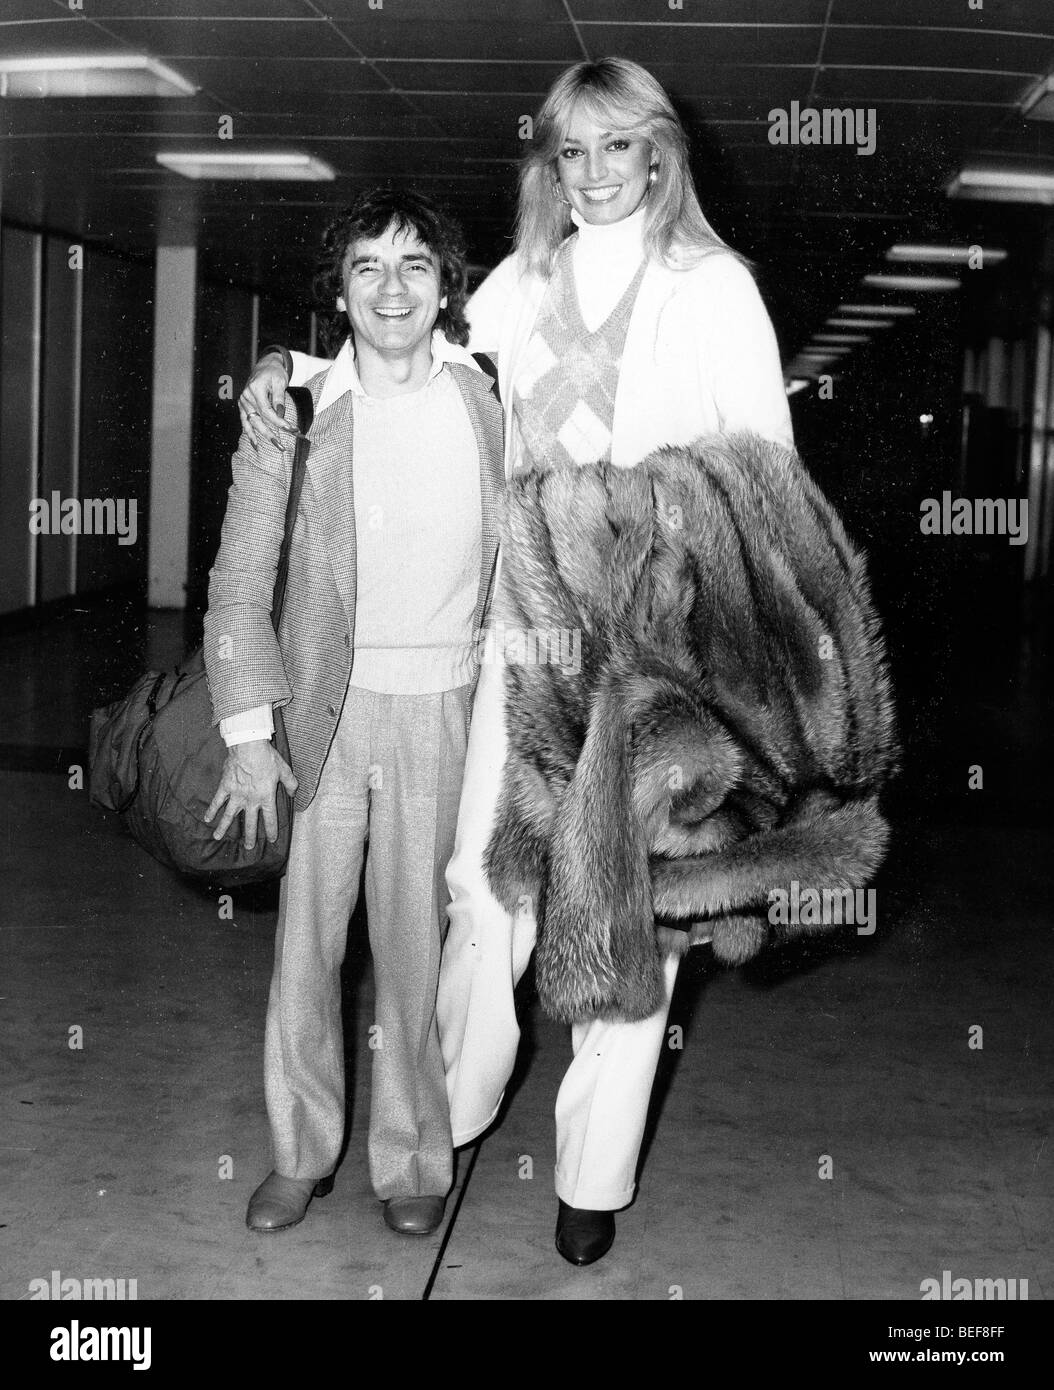 Oct 01, 1980; London, UK; Actor DUDLEY MOORE (April 19, 1935 - March 27, 2002) and his girlfriend SUSAN ANTON arriving - Stock Image